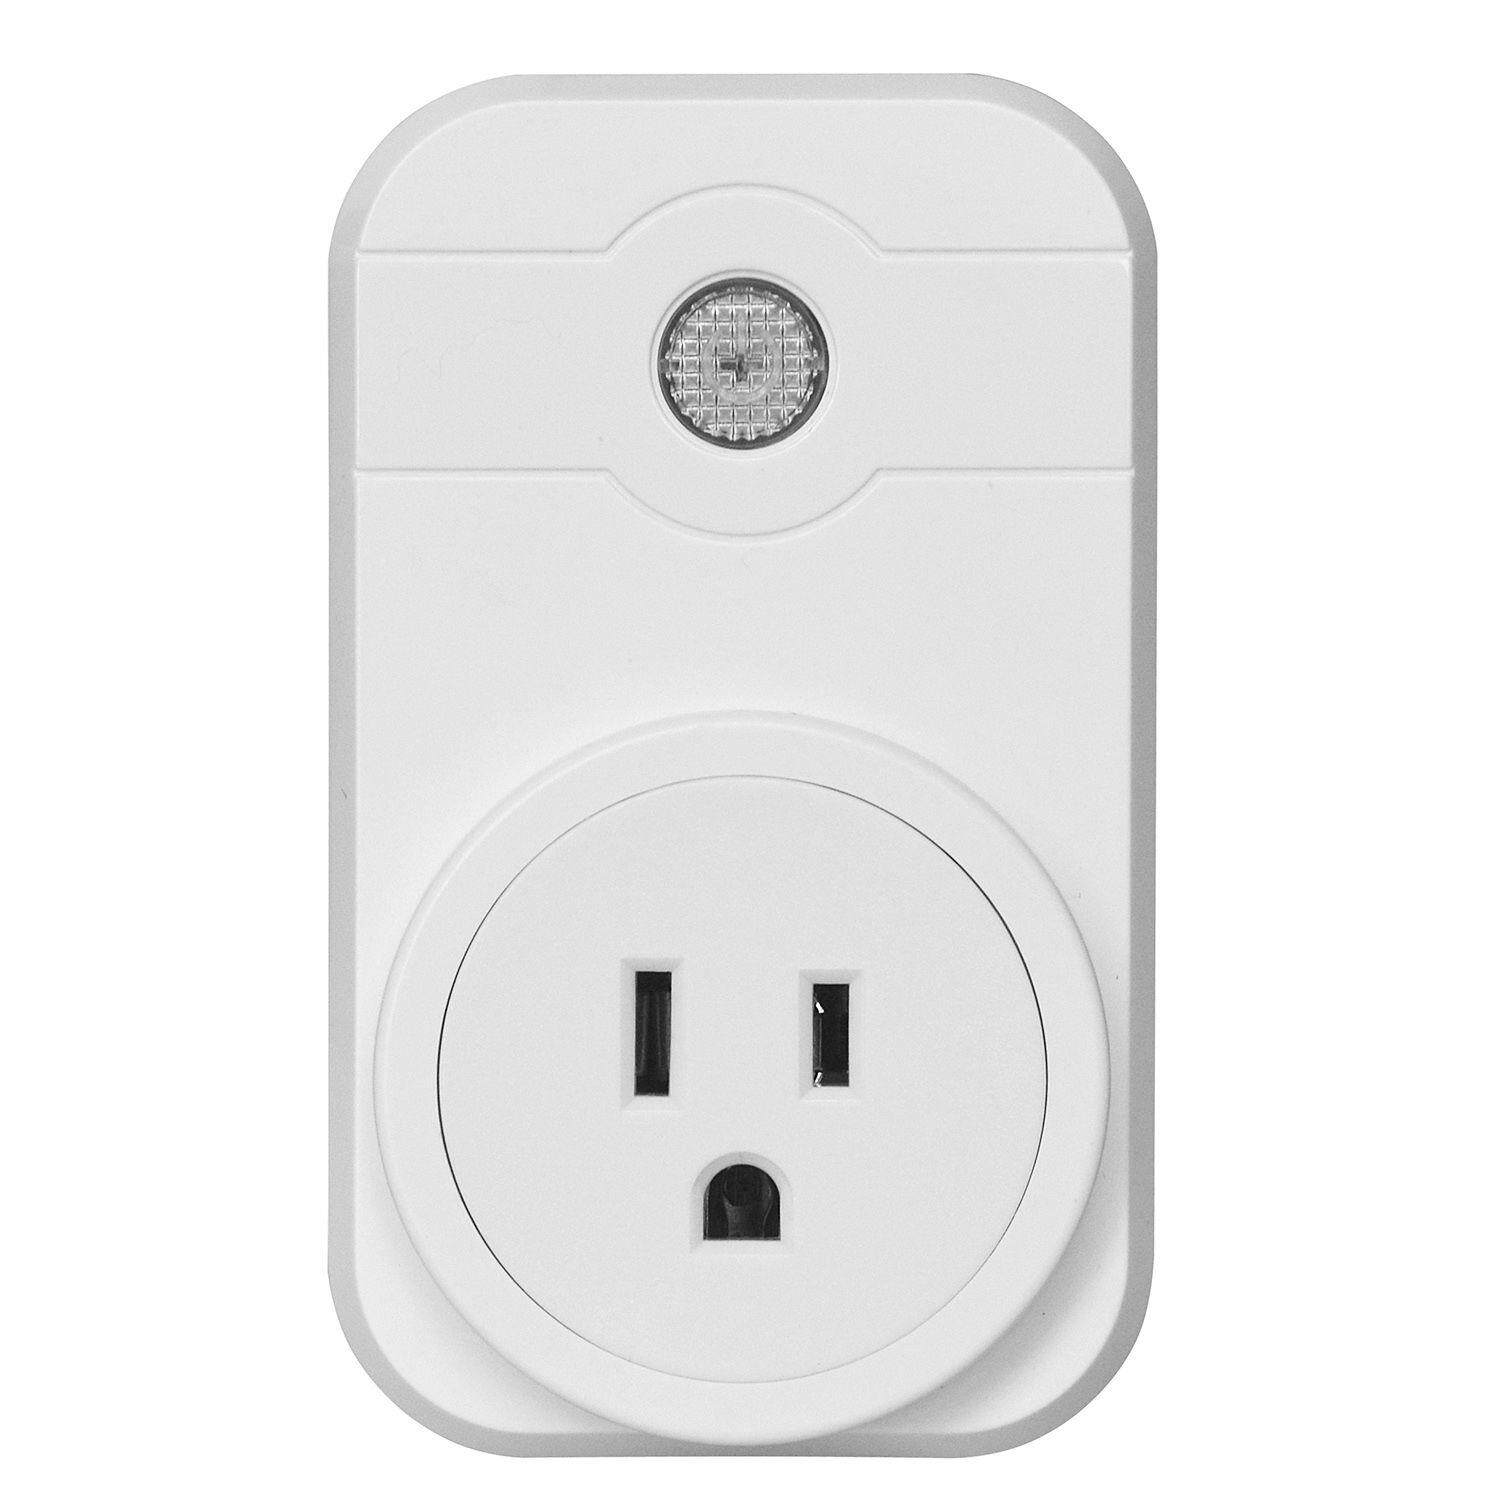 Smart Wifi Outlet Alexa App Remote Control Timer Switch Home Socket with US Plug